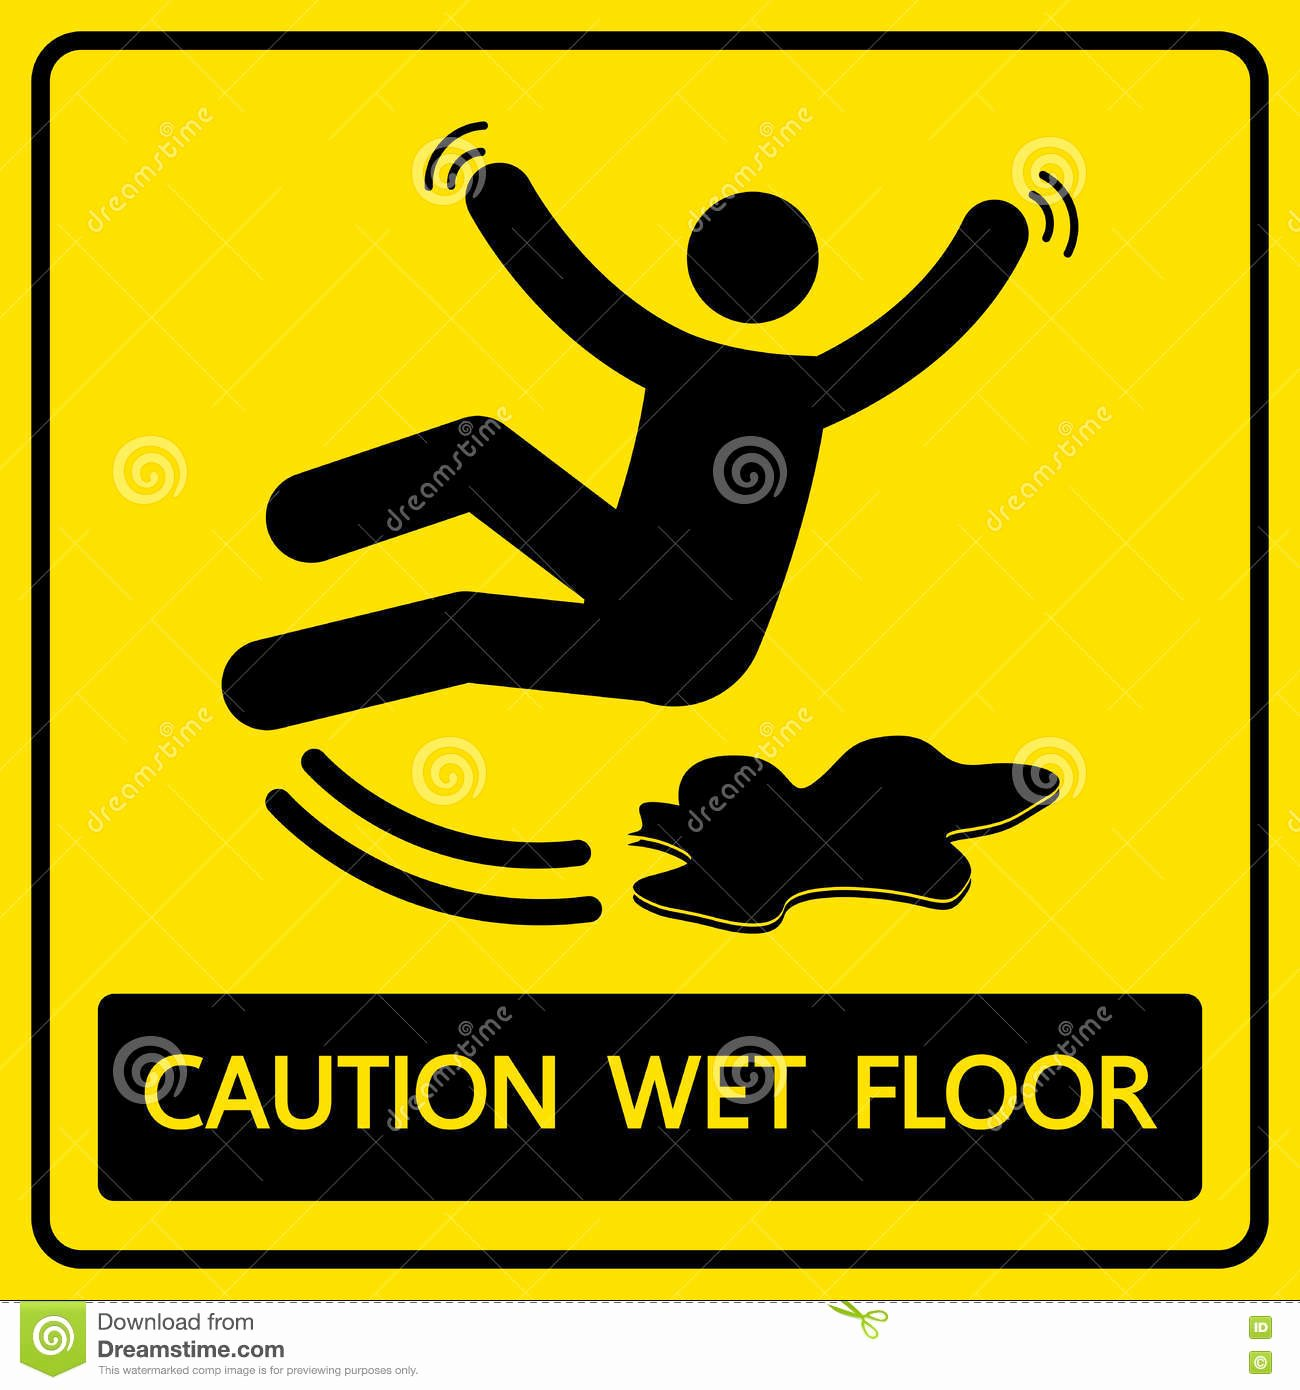 Wet Floor Signs Printable Inspirational Caution Wet Floor Sign and Symbol Stock Illustration